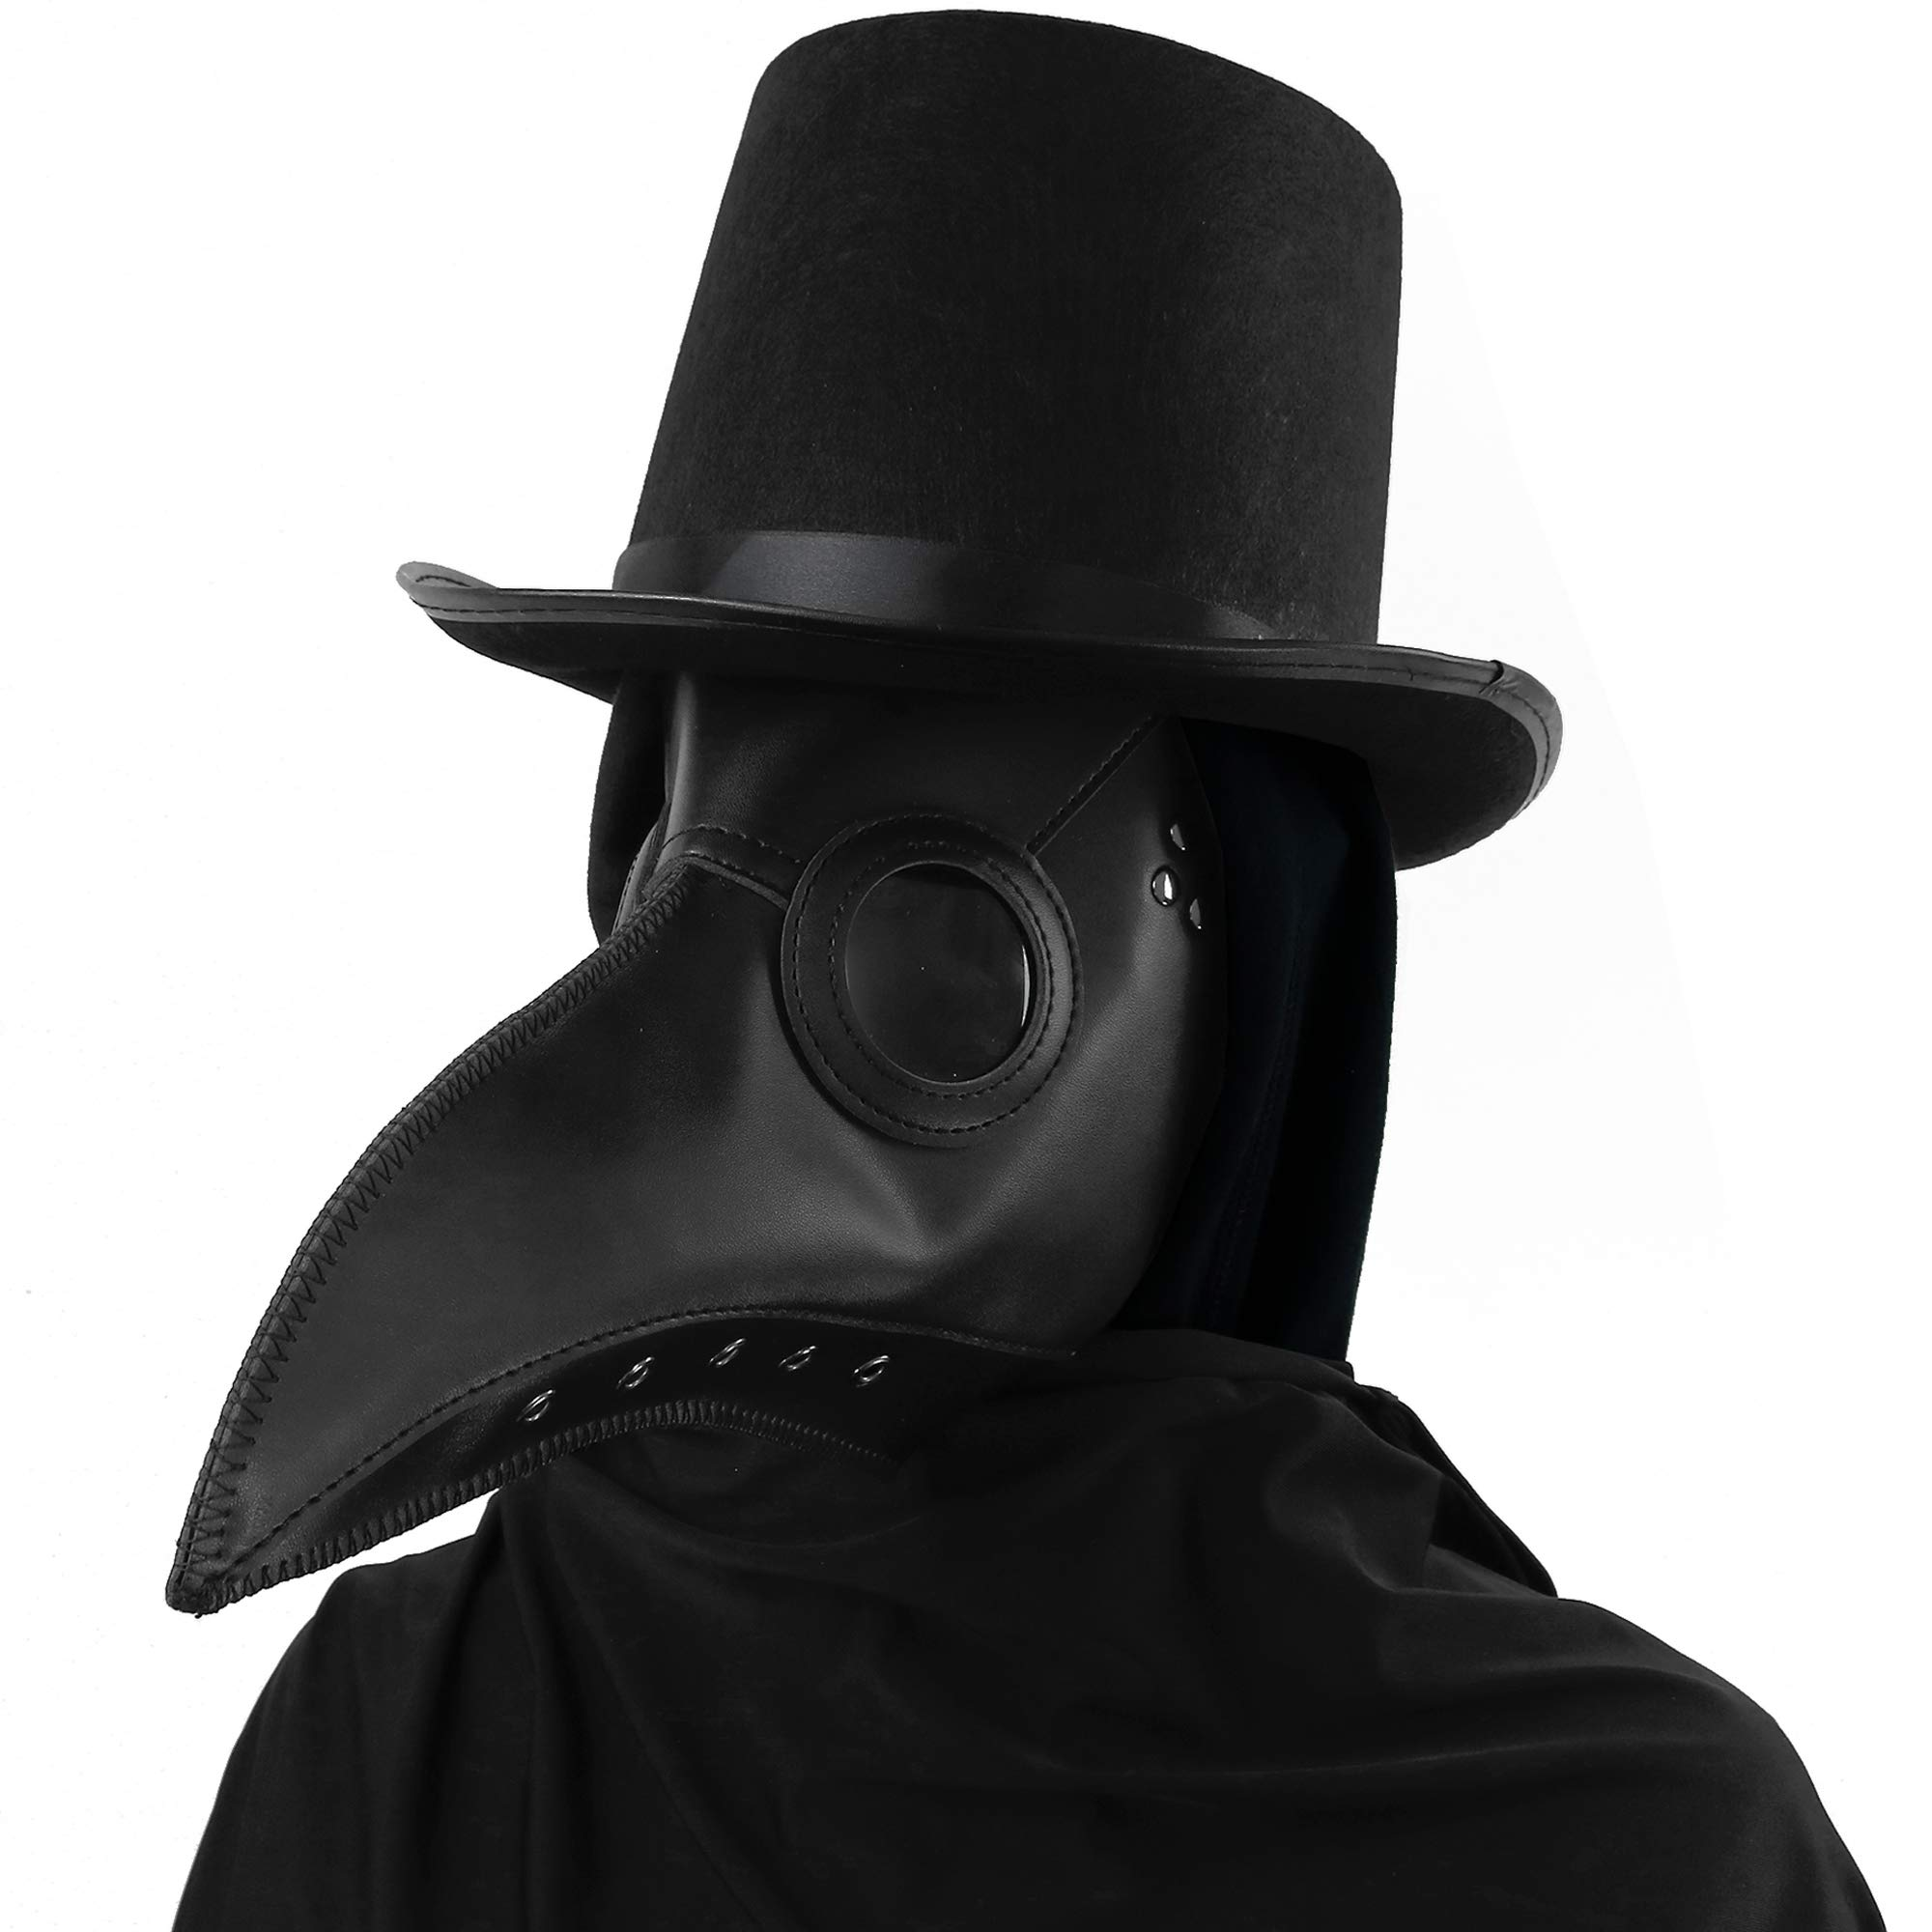 Skeleteen Medieval Doctor Plague Mask - Black Faux Leather Bird Death Doctors Mask Costume Accessory by Skeleteen